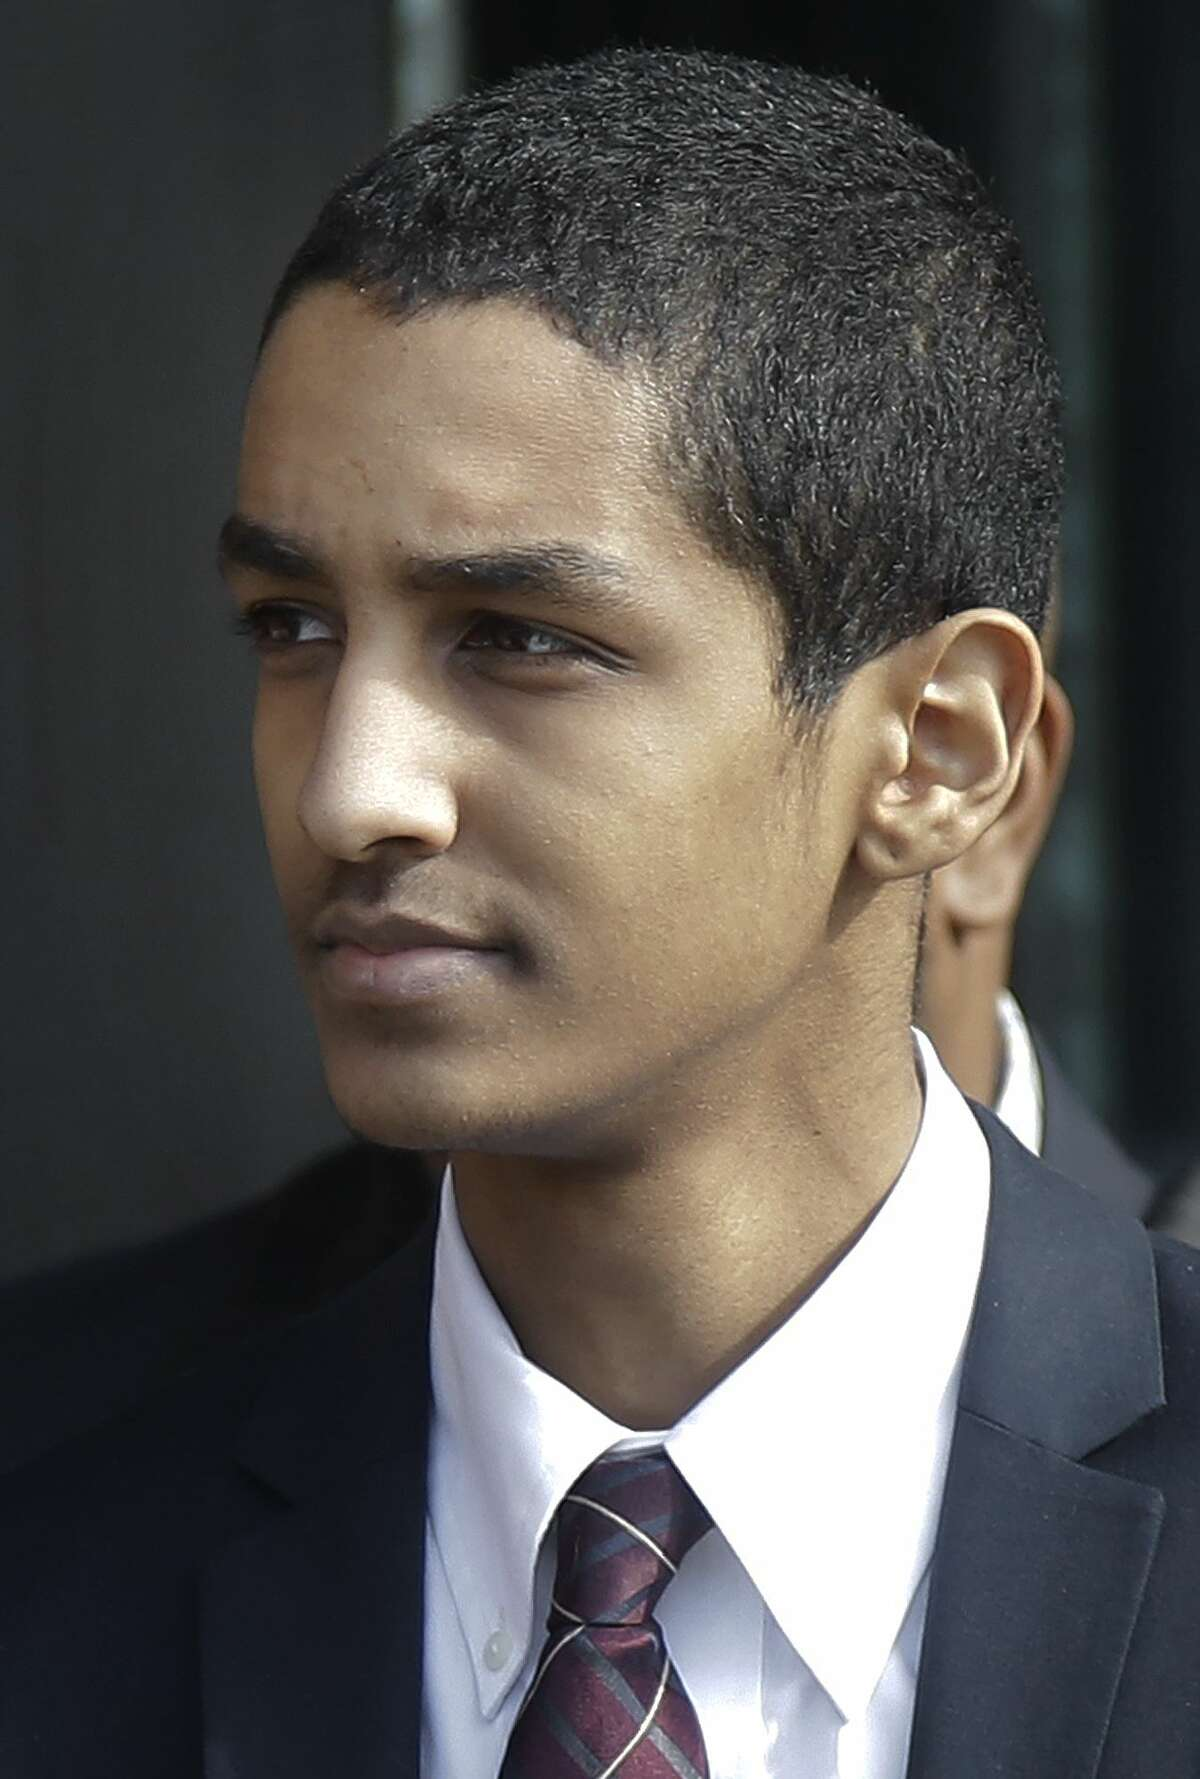 Robel Phillipos departs federal court after he was convicted in Boston Tuesday, Oct. 28, 2014 on two counts of lying about being in the dorm room of Boston Marathon bombing suspect Dzhokhar Tsarnaev three days after the bombing in 2013, while two other friends removed a backpack containing fireworks and other potential evidence. (AP Photo/Stephan Savoia)